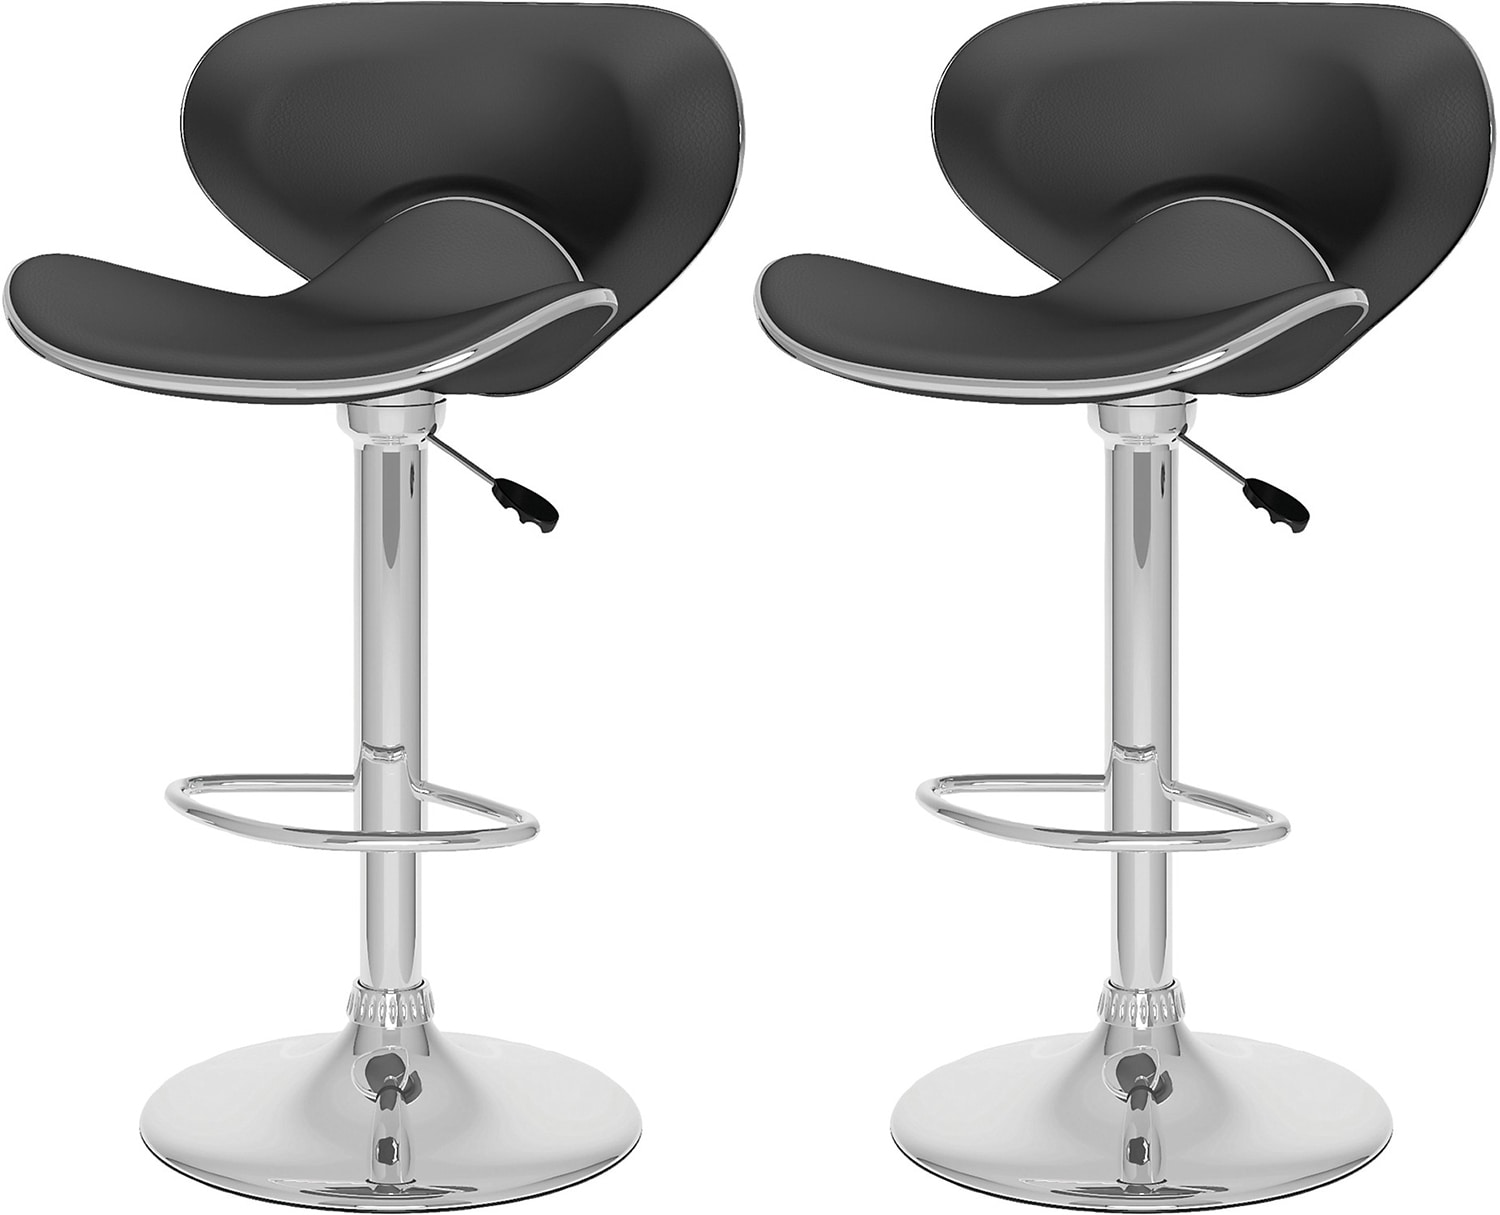 Curved Form-Fitting Adjustable Barstool Set of 2 - Black